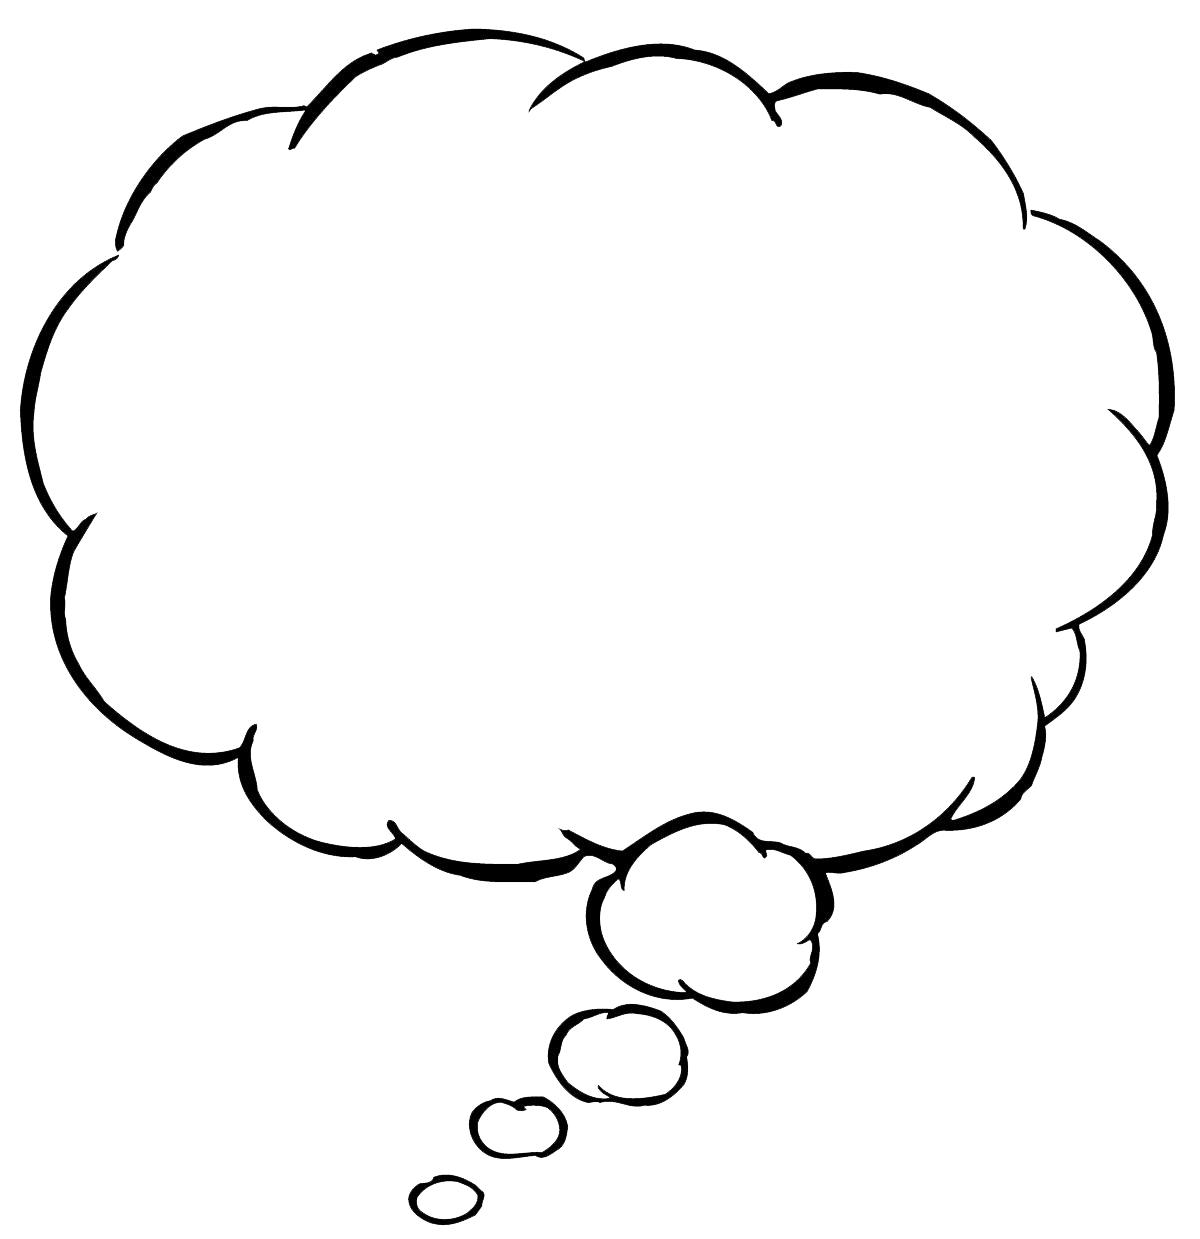 Thought bubble speech clipart